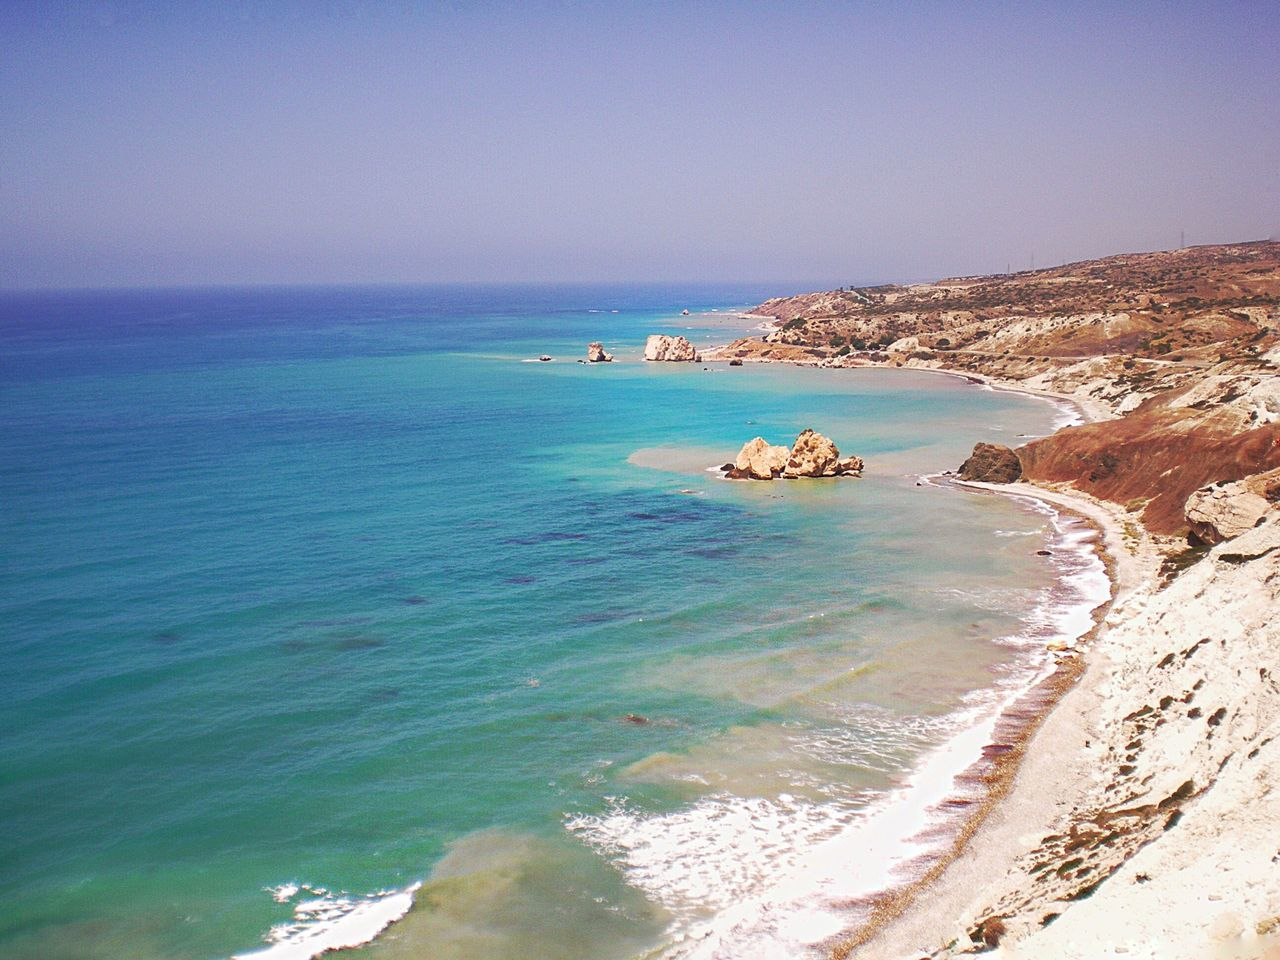 ✨Cyprus, the island of Aphrodite✨ Horizon Over Water Sea Beach Water Nature Beauty In Nature Clear Sky Outdoors Coastline Sand No People Capture The Moment Great Atmosphere Landscape Summer Photo Photography Cyprus Island Mediterranean Sea Mediterranean  EyeEm EyeEm Gallery EyeEm Best Shots EyeEm Best Edits